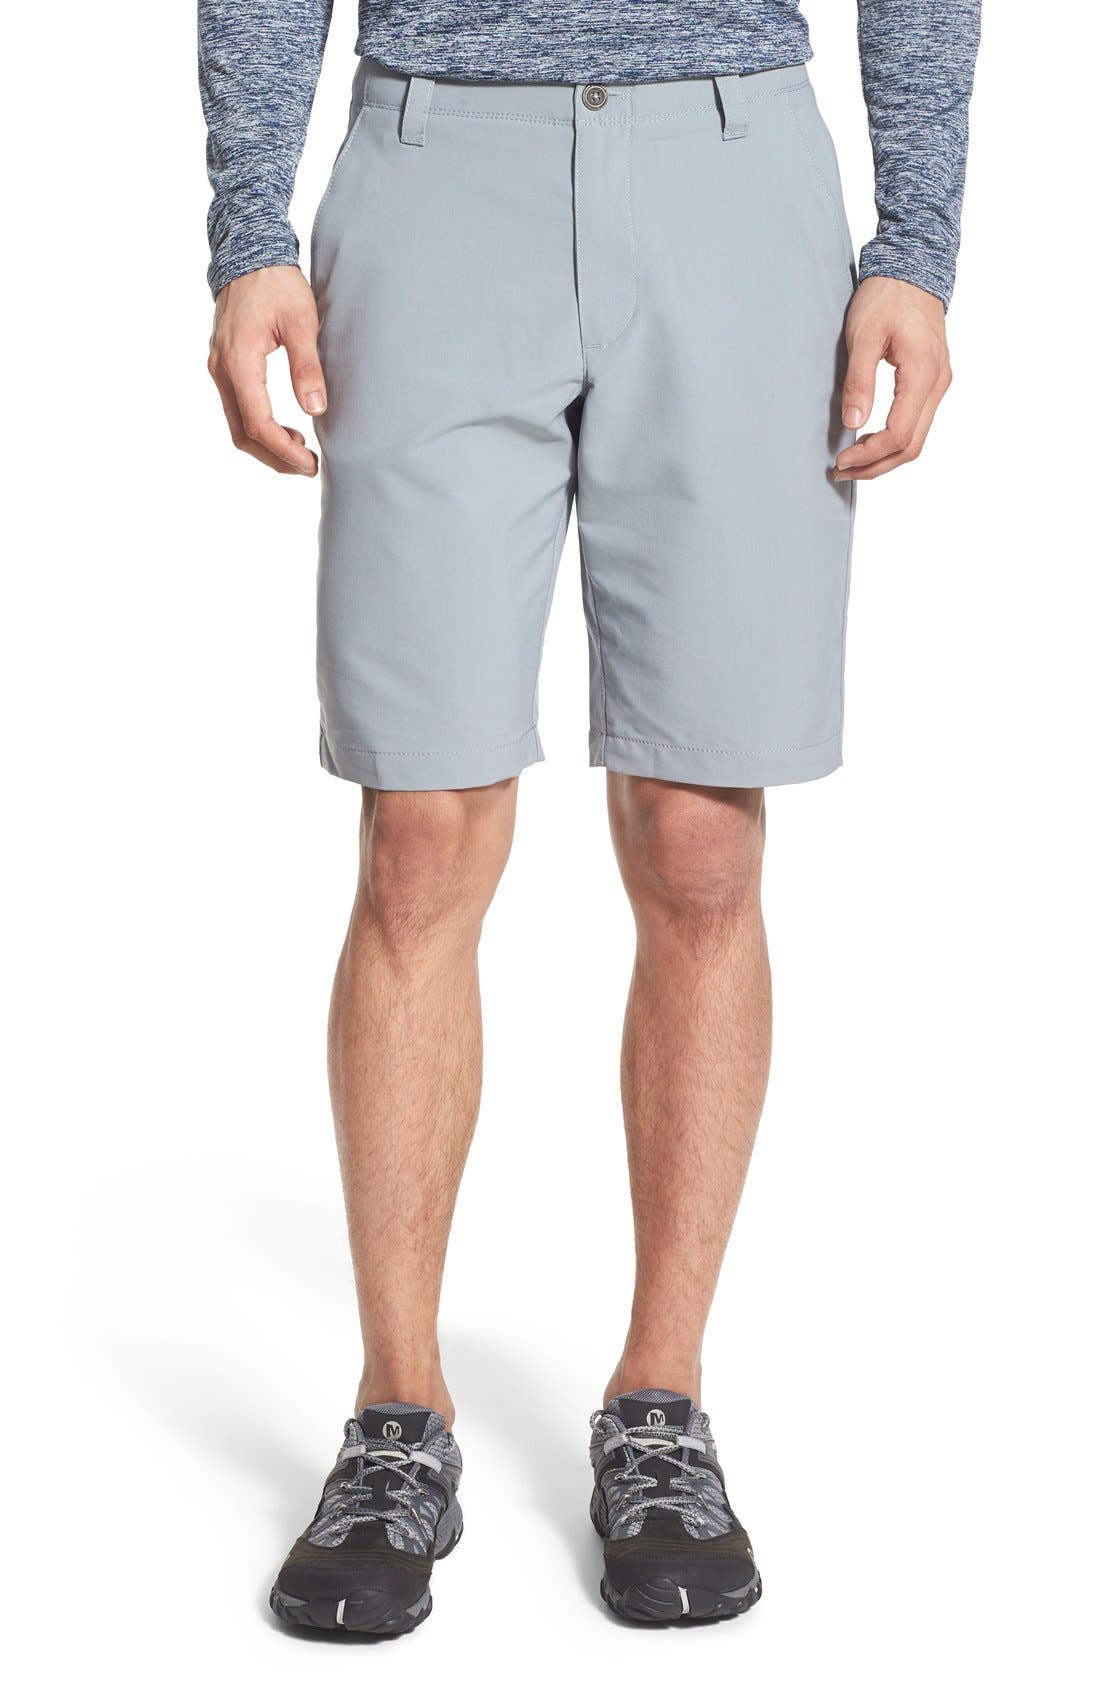 'Matchplay' Moisture Wicking Golf Shorts,                             Alternate thumbnail 6, color,                             035